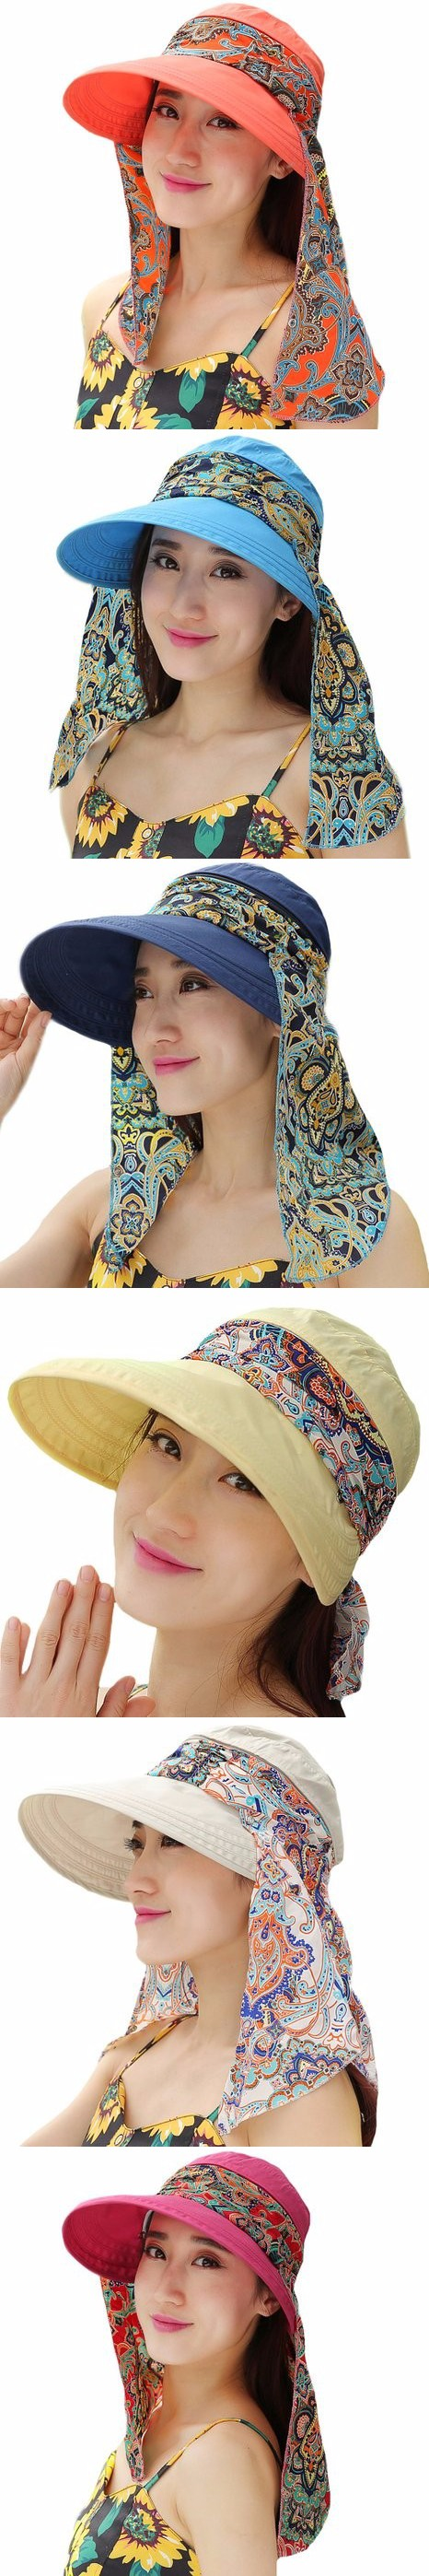 fb1a73bba36 2016 Summer Style Women Foldable Wide Large Brim Floppy Beach Gorro Hats  Chapeu Outdoors Visors Cap Sun Collapsible Anti-Uv Hat  8.5